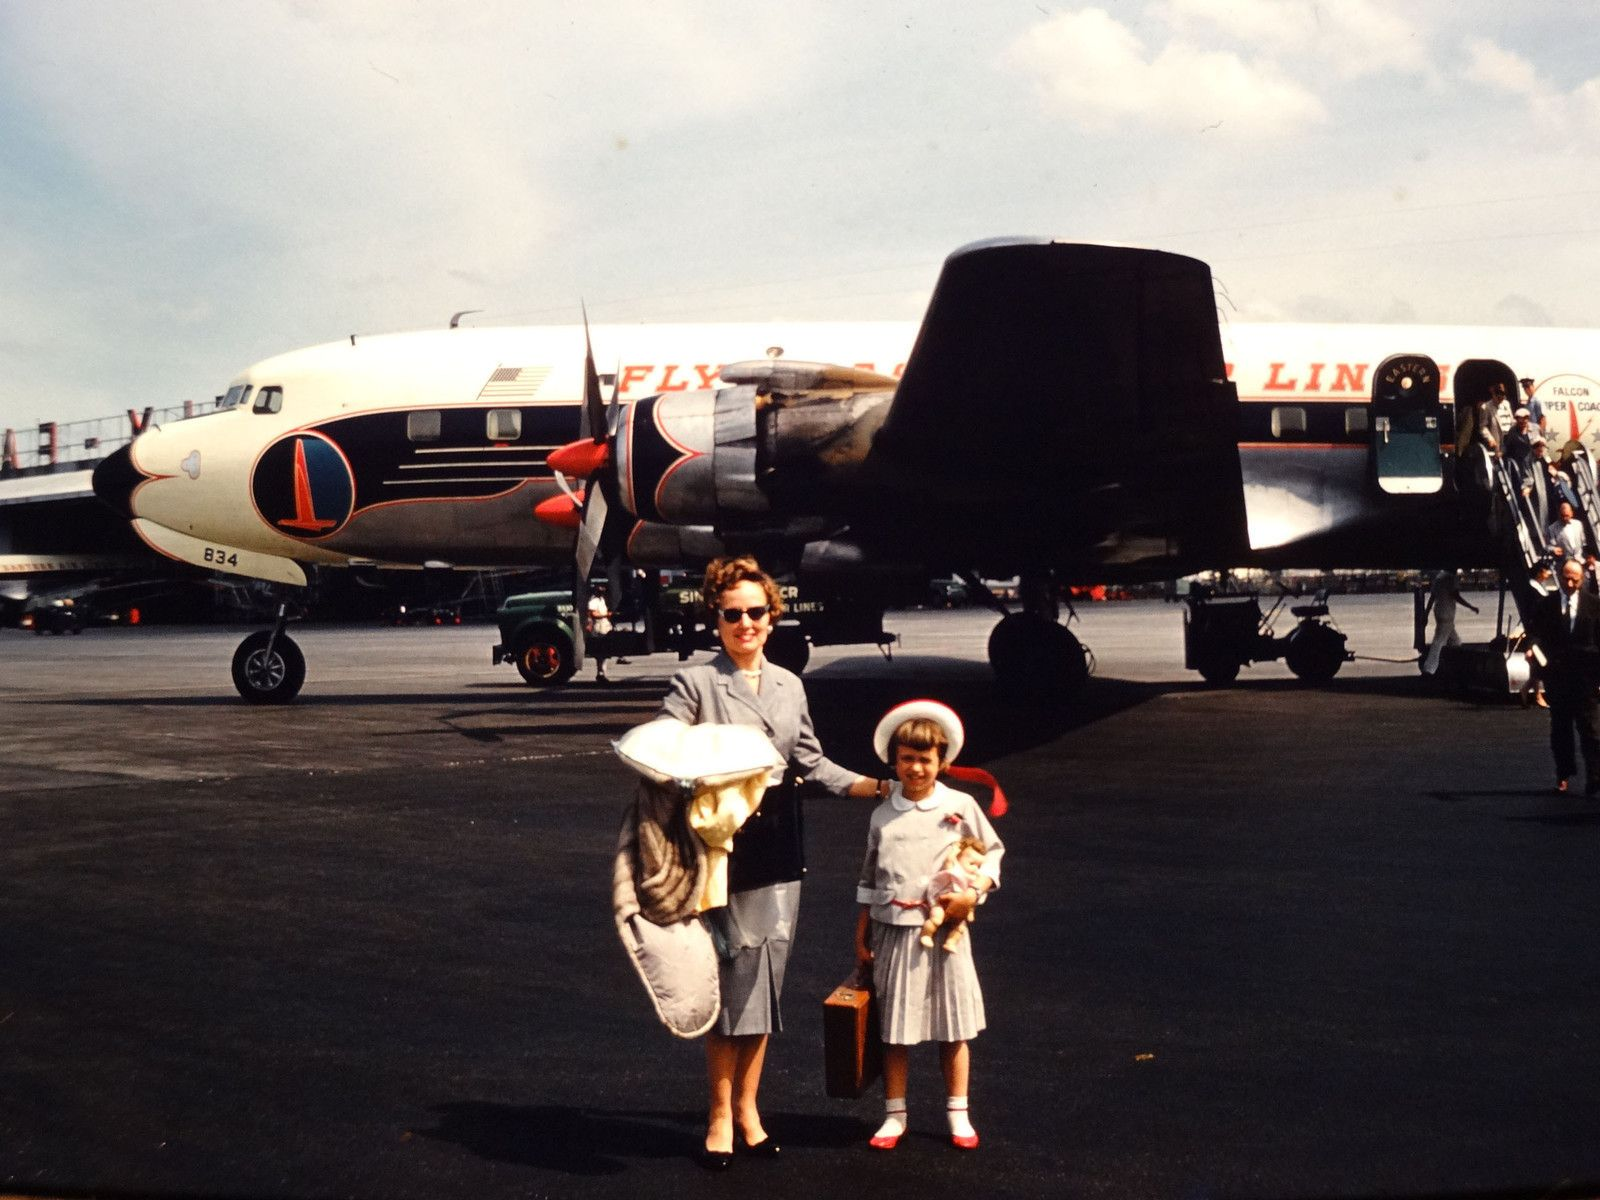 Slide Tourists on the tarmac • 1960s Italy travel